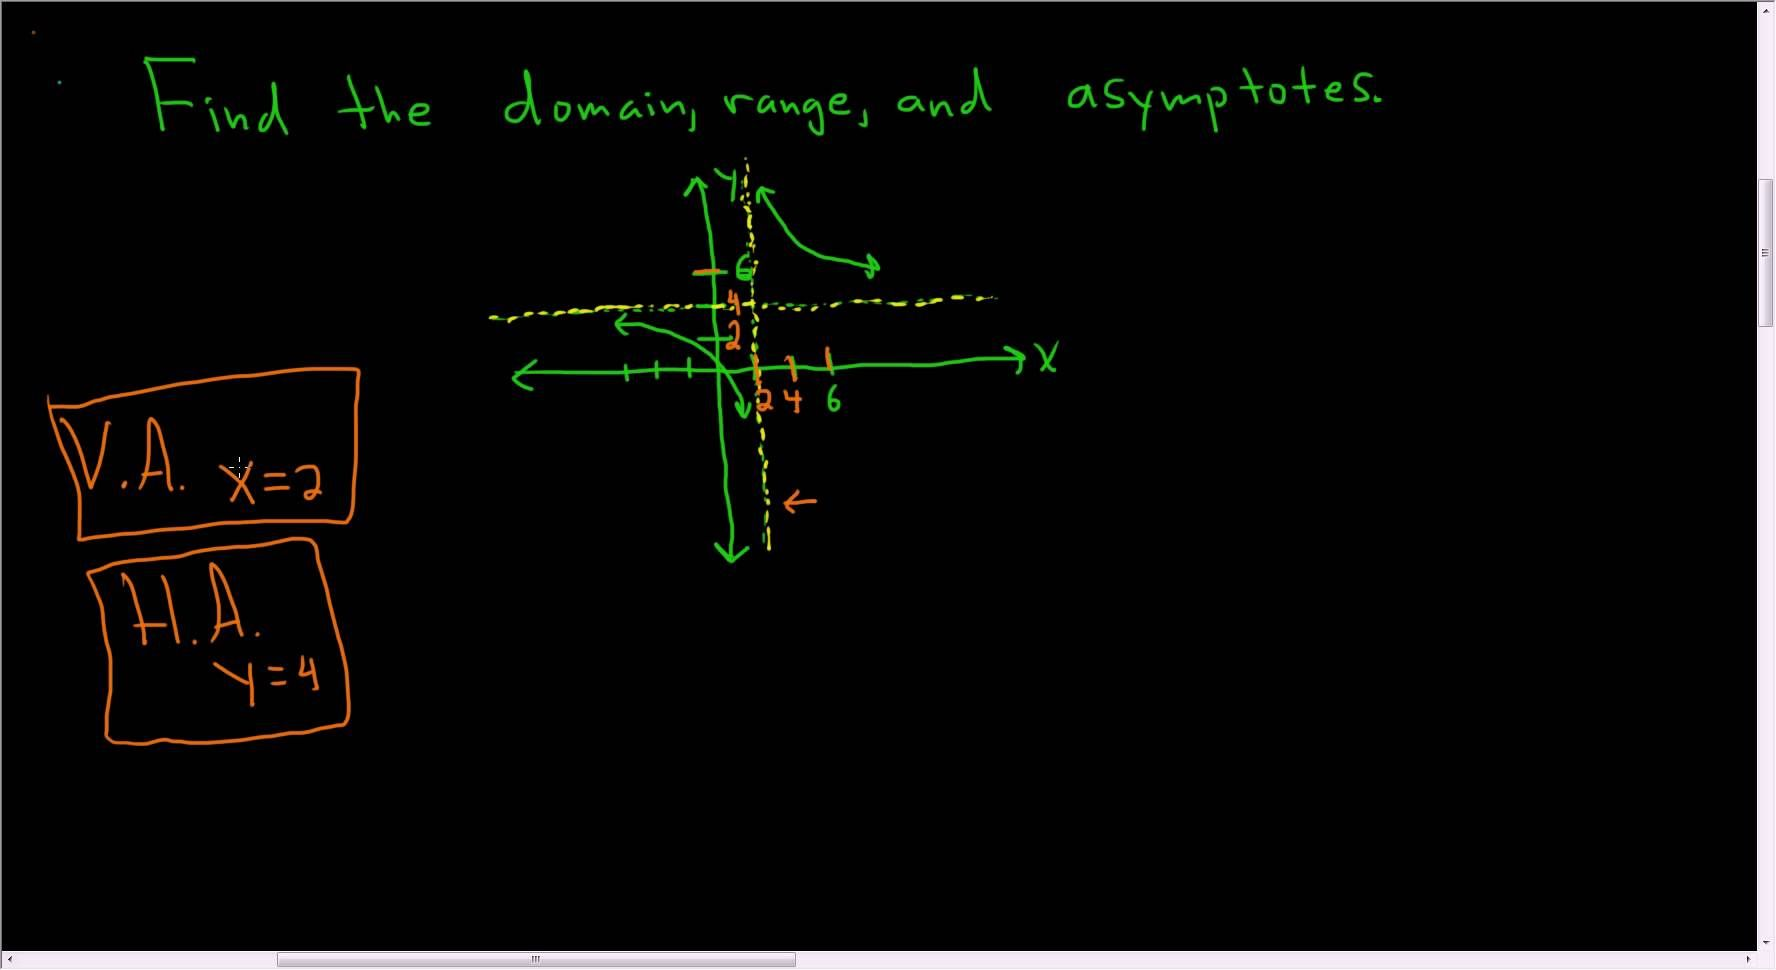 Finding the Domain, Range, and Asymptotes from a Graph